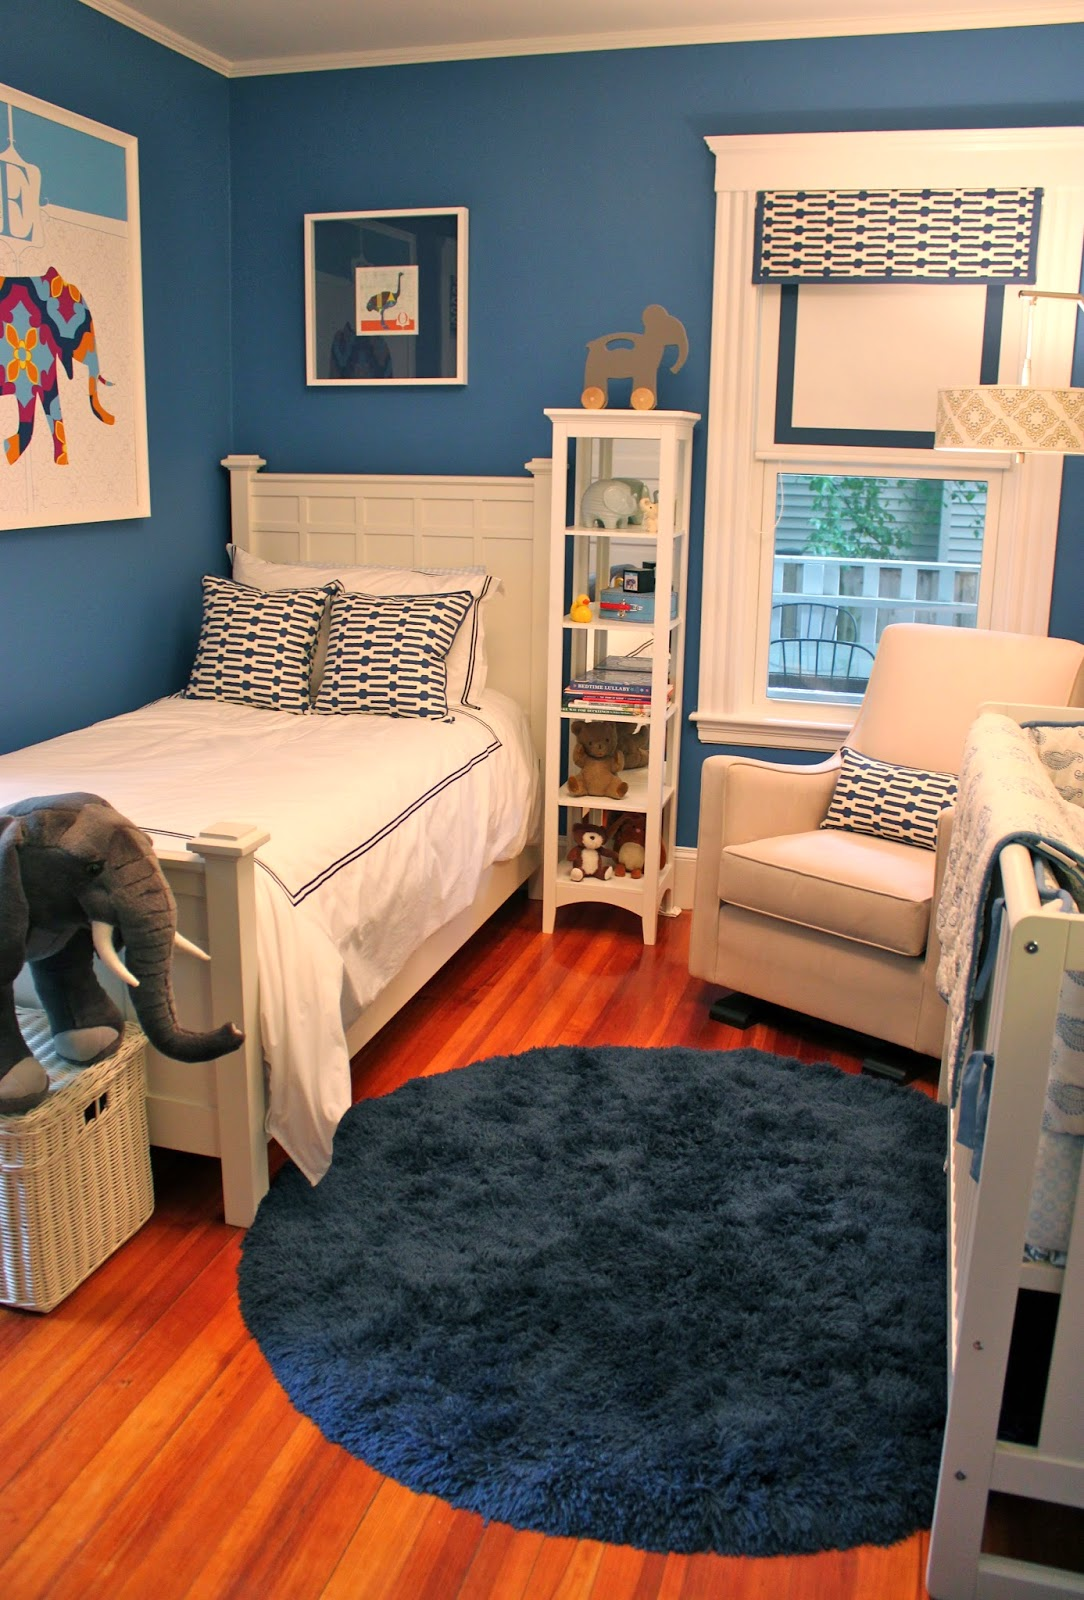 Ideas For Decorating Your Boy's Room | Ideas for home decor on Small Bedroom Ideas For Boys  id=16394